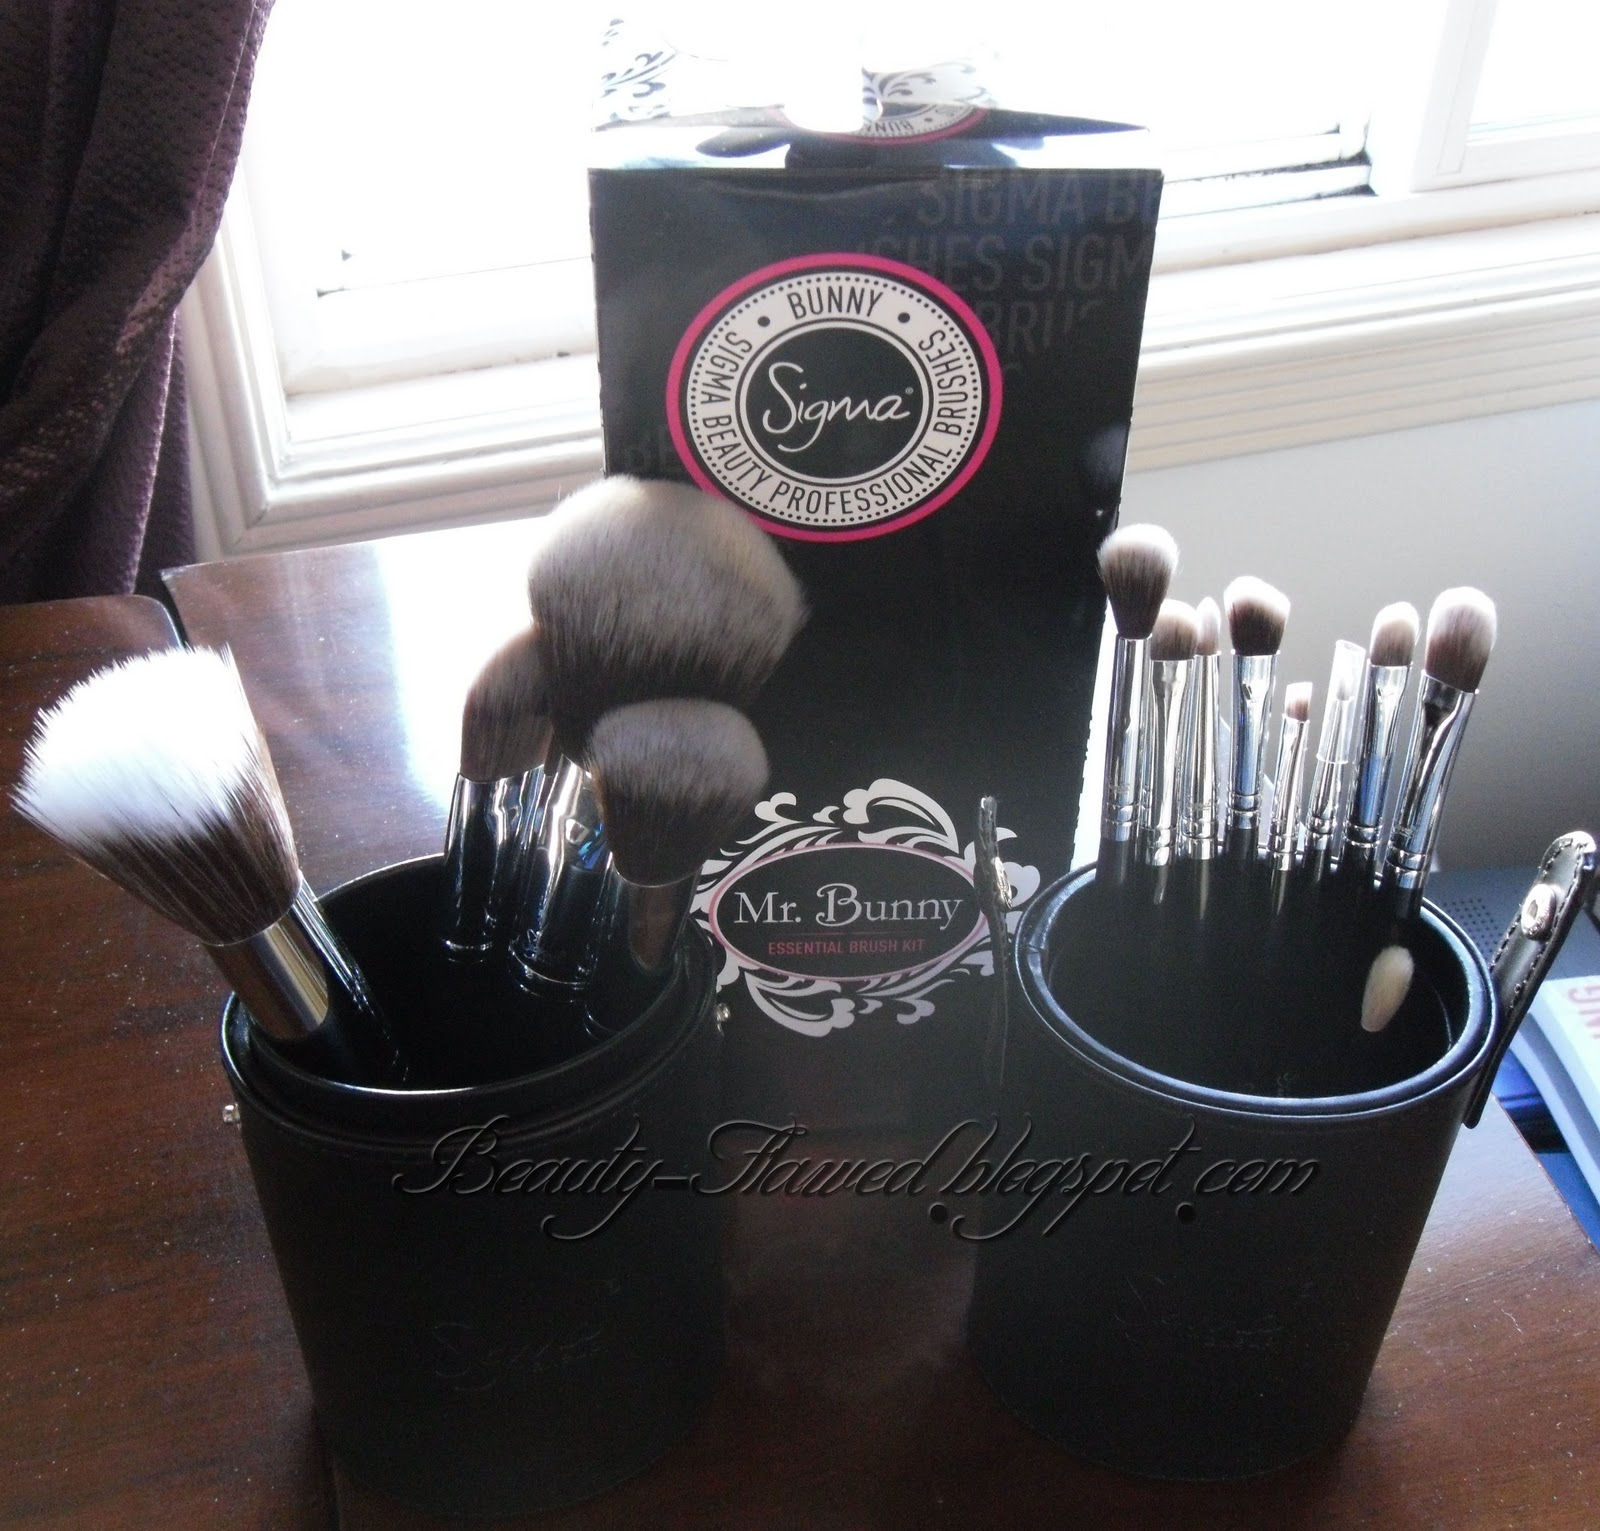 sigma brushes mrs bunny. my aunt and long list of wishlist things she decided to surprise me with a gift certificate for some specific on that list. sigma brushes ! sigma brushes mrs bunny